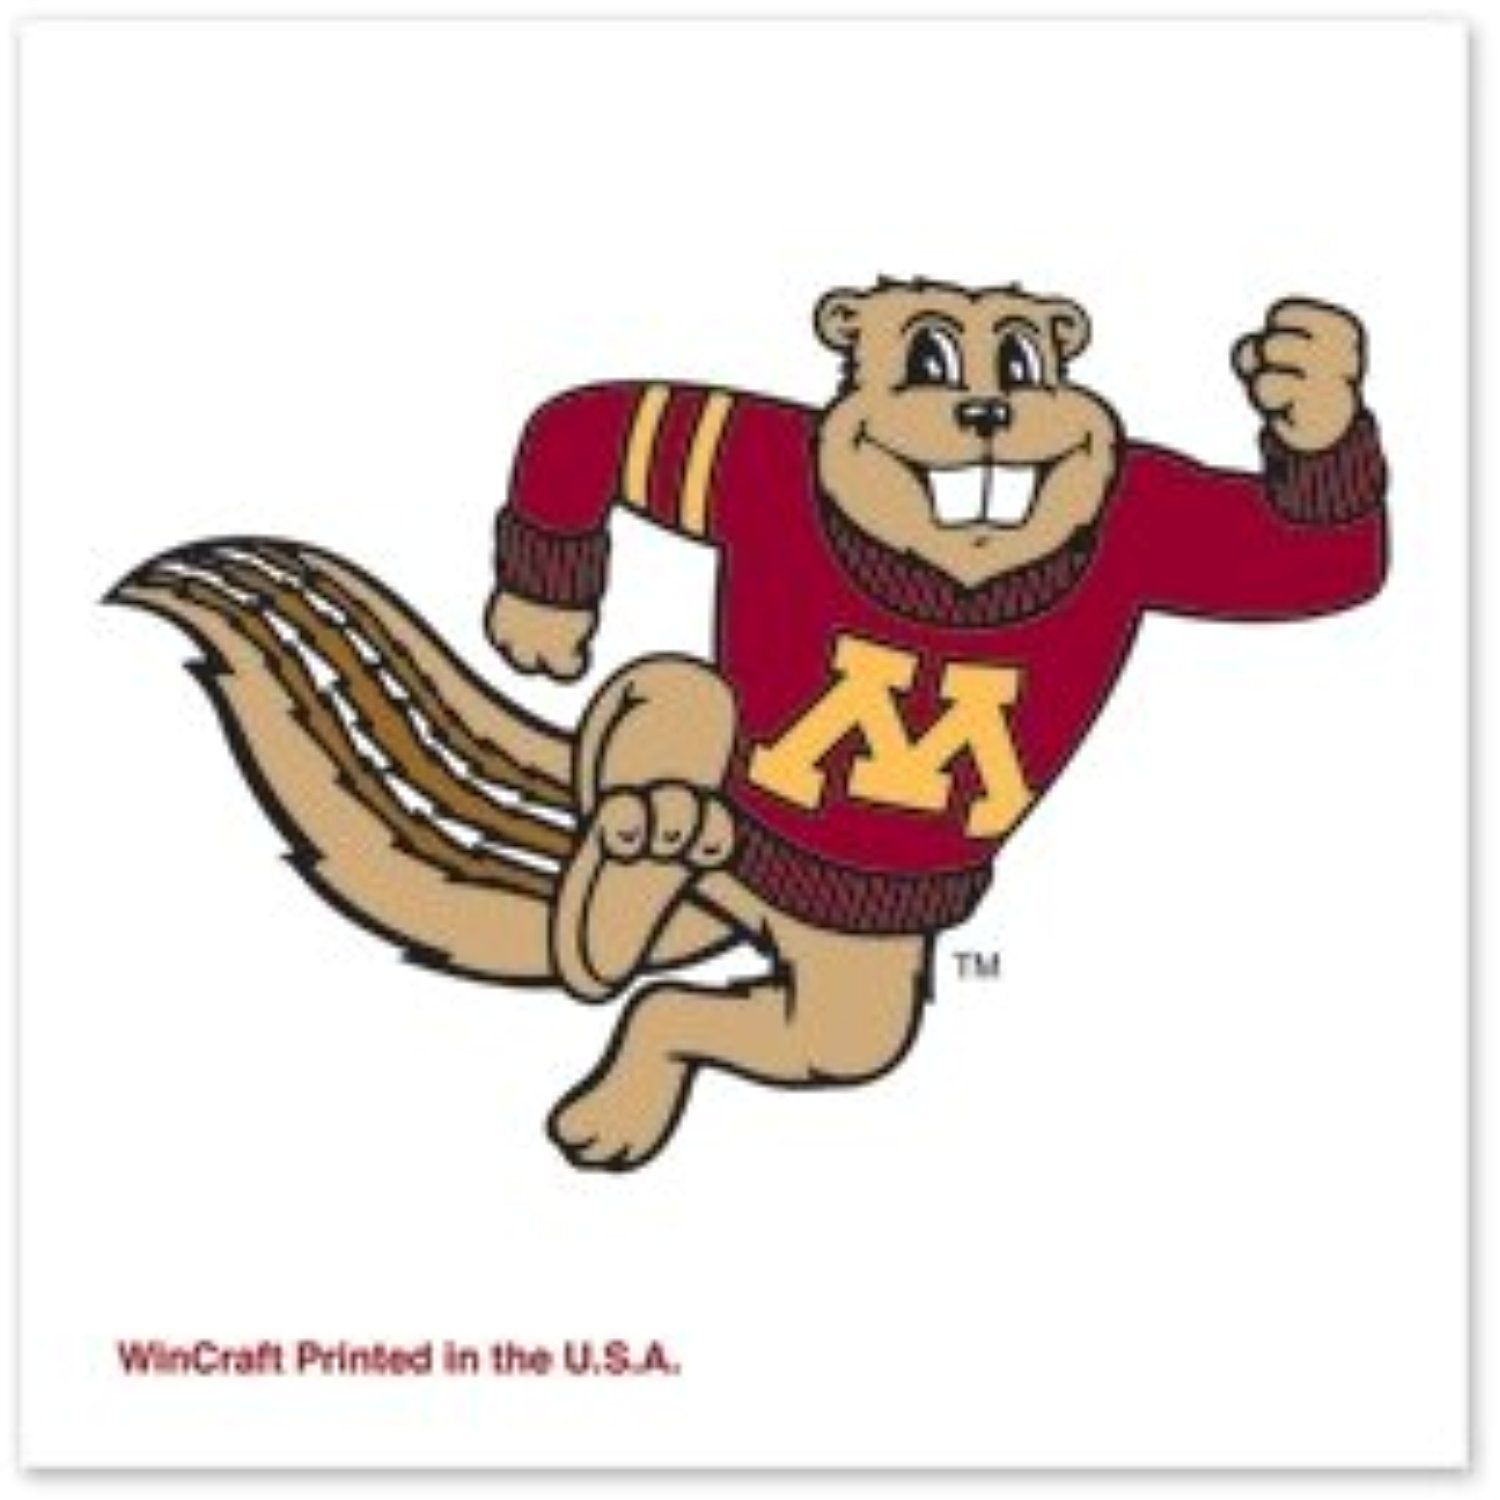 Minnesota Golden Gophers Official Ncaa 1 X1 Fake Tattoos By Wincraft Details Can Be Found By Clic Minnesota Gophers Minnesota Golden Gophers Gopher Football